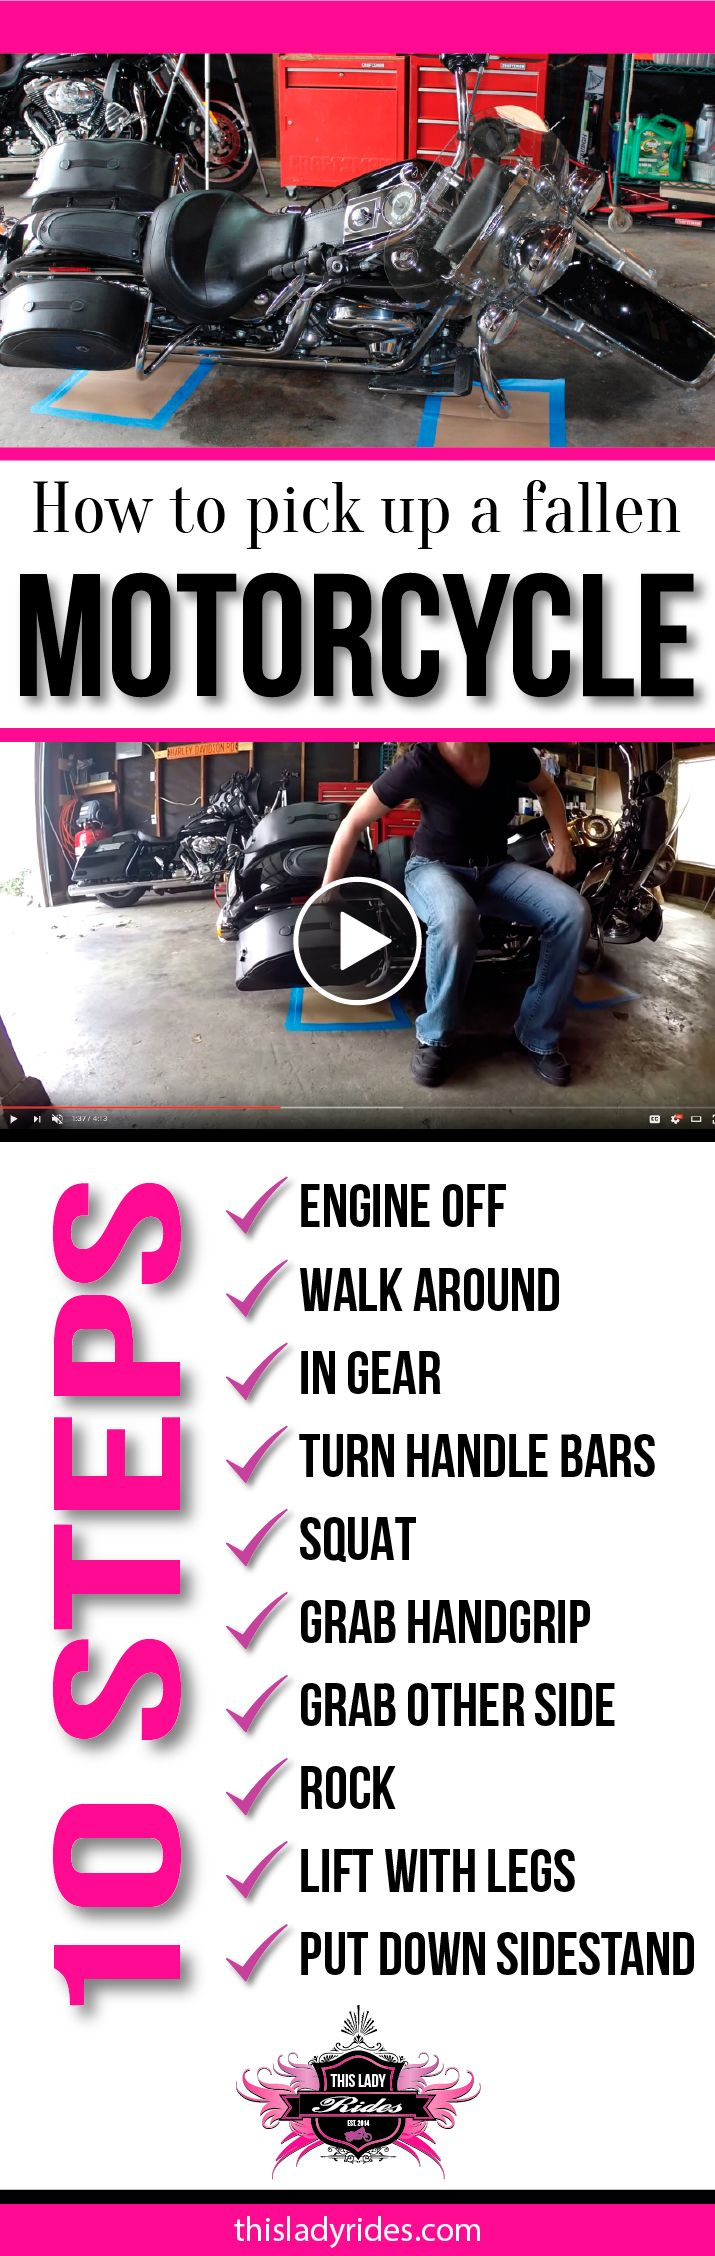 10 Steps to help a lady biker pick up a fallen motorcycle